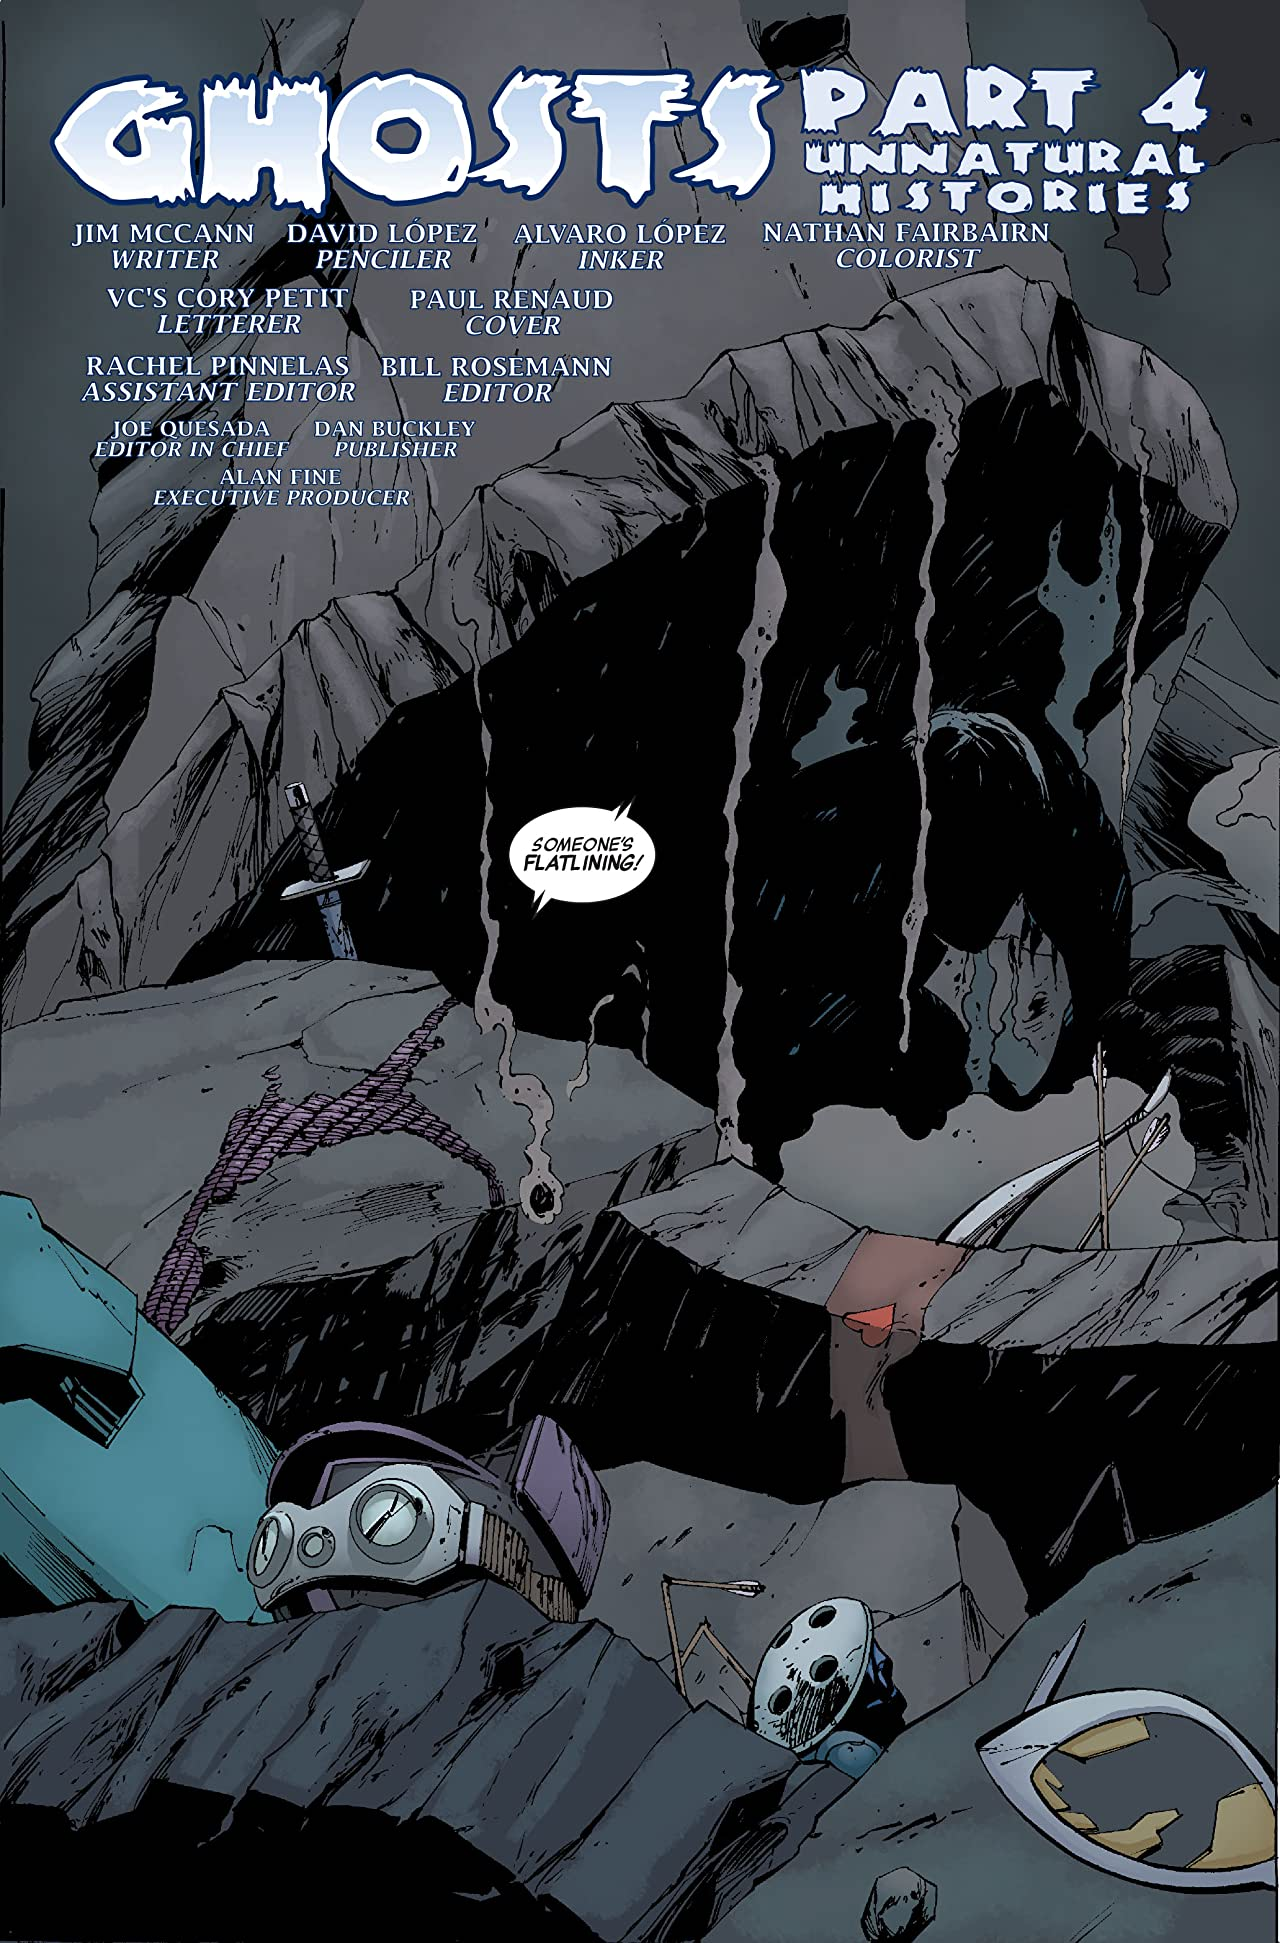 Hawkeye & Mockingbird #4